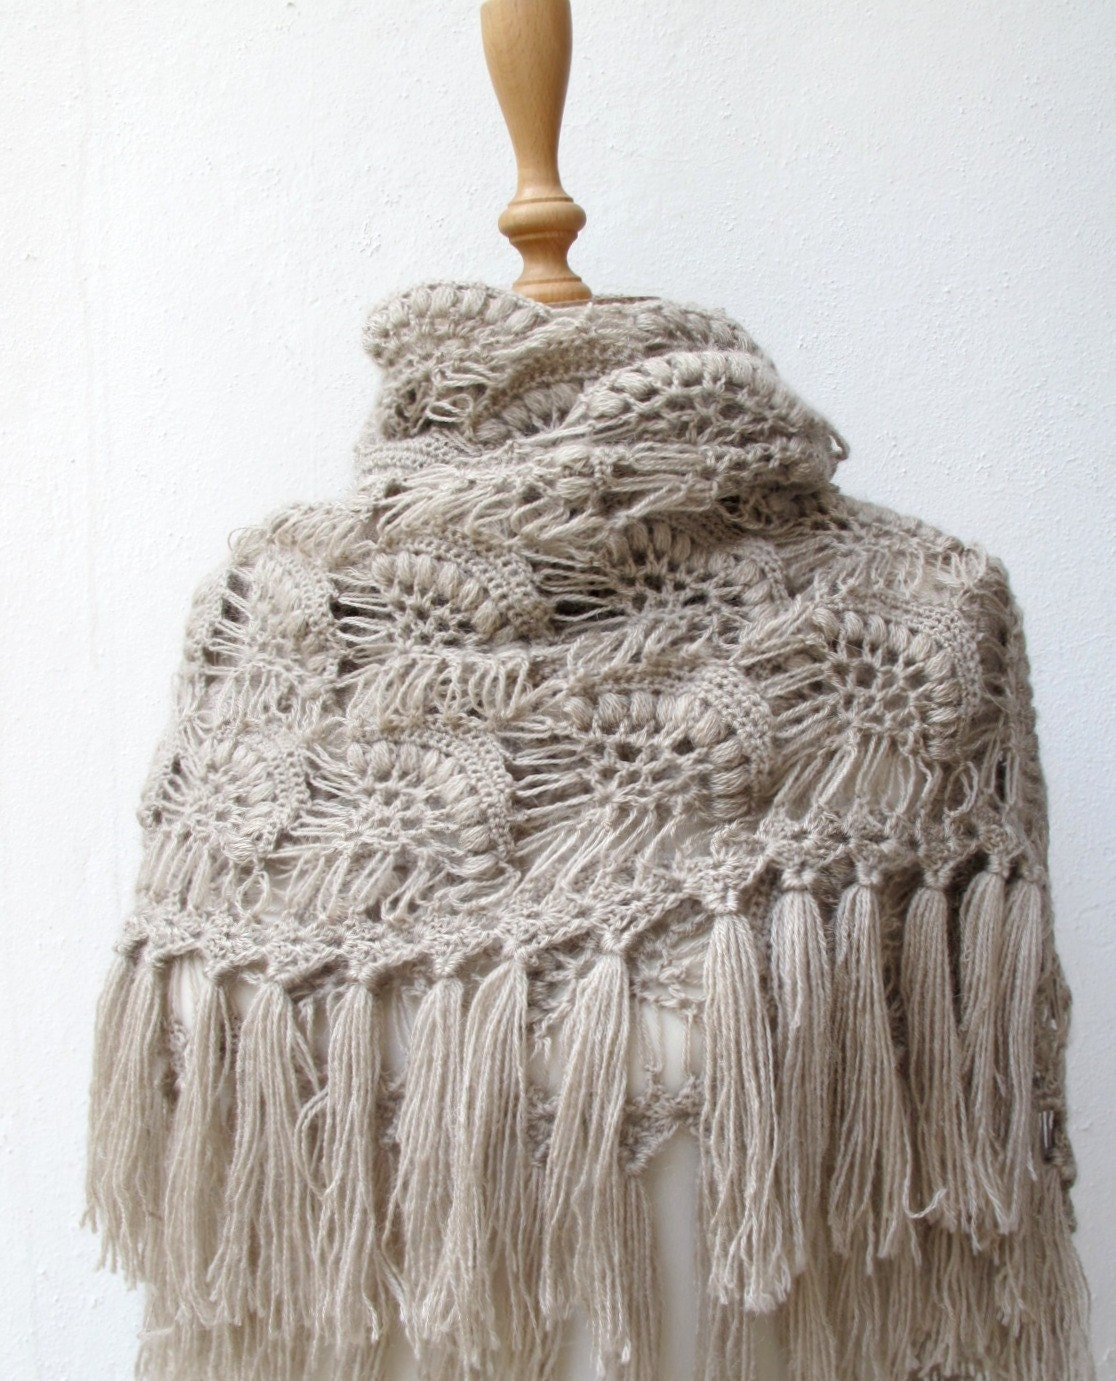 Crochet Shawl : Crochet Shawl Shoulder Wrap Shrug Winter Mohair Luxury Taupe Brown